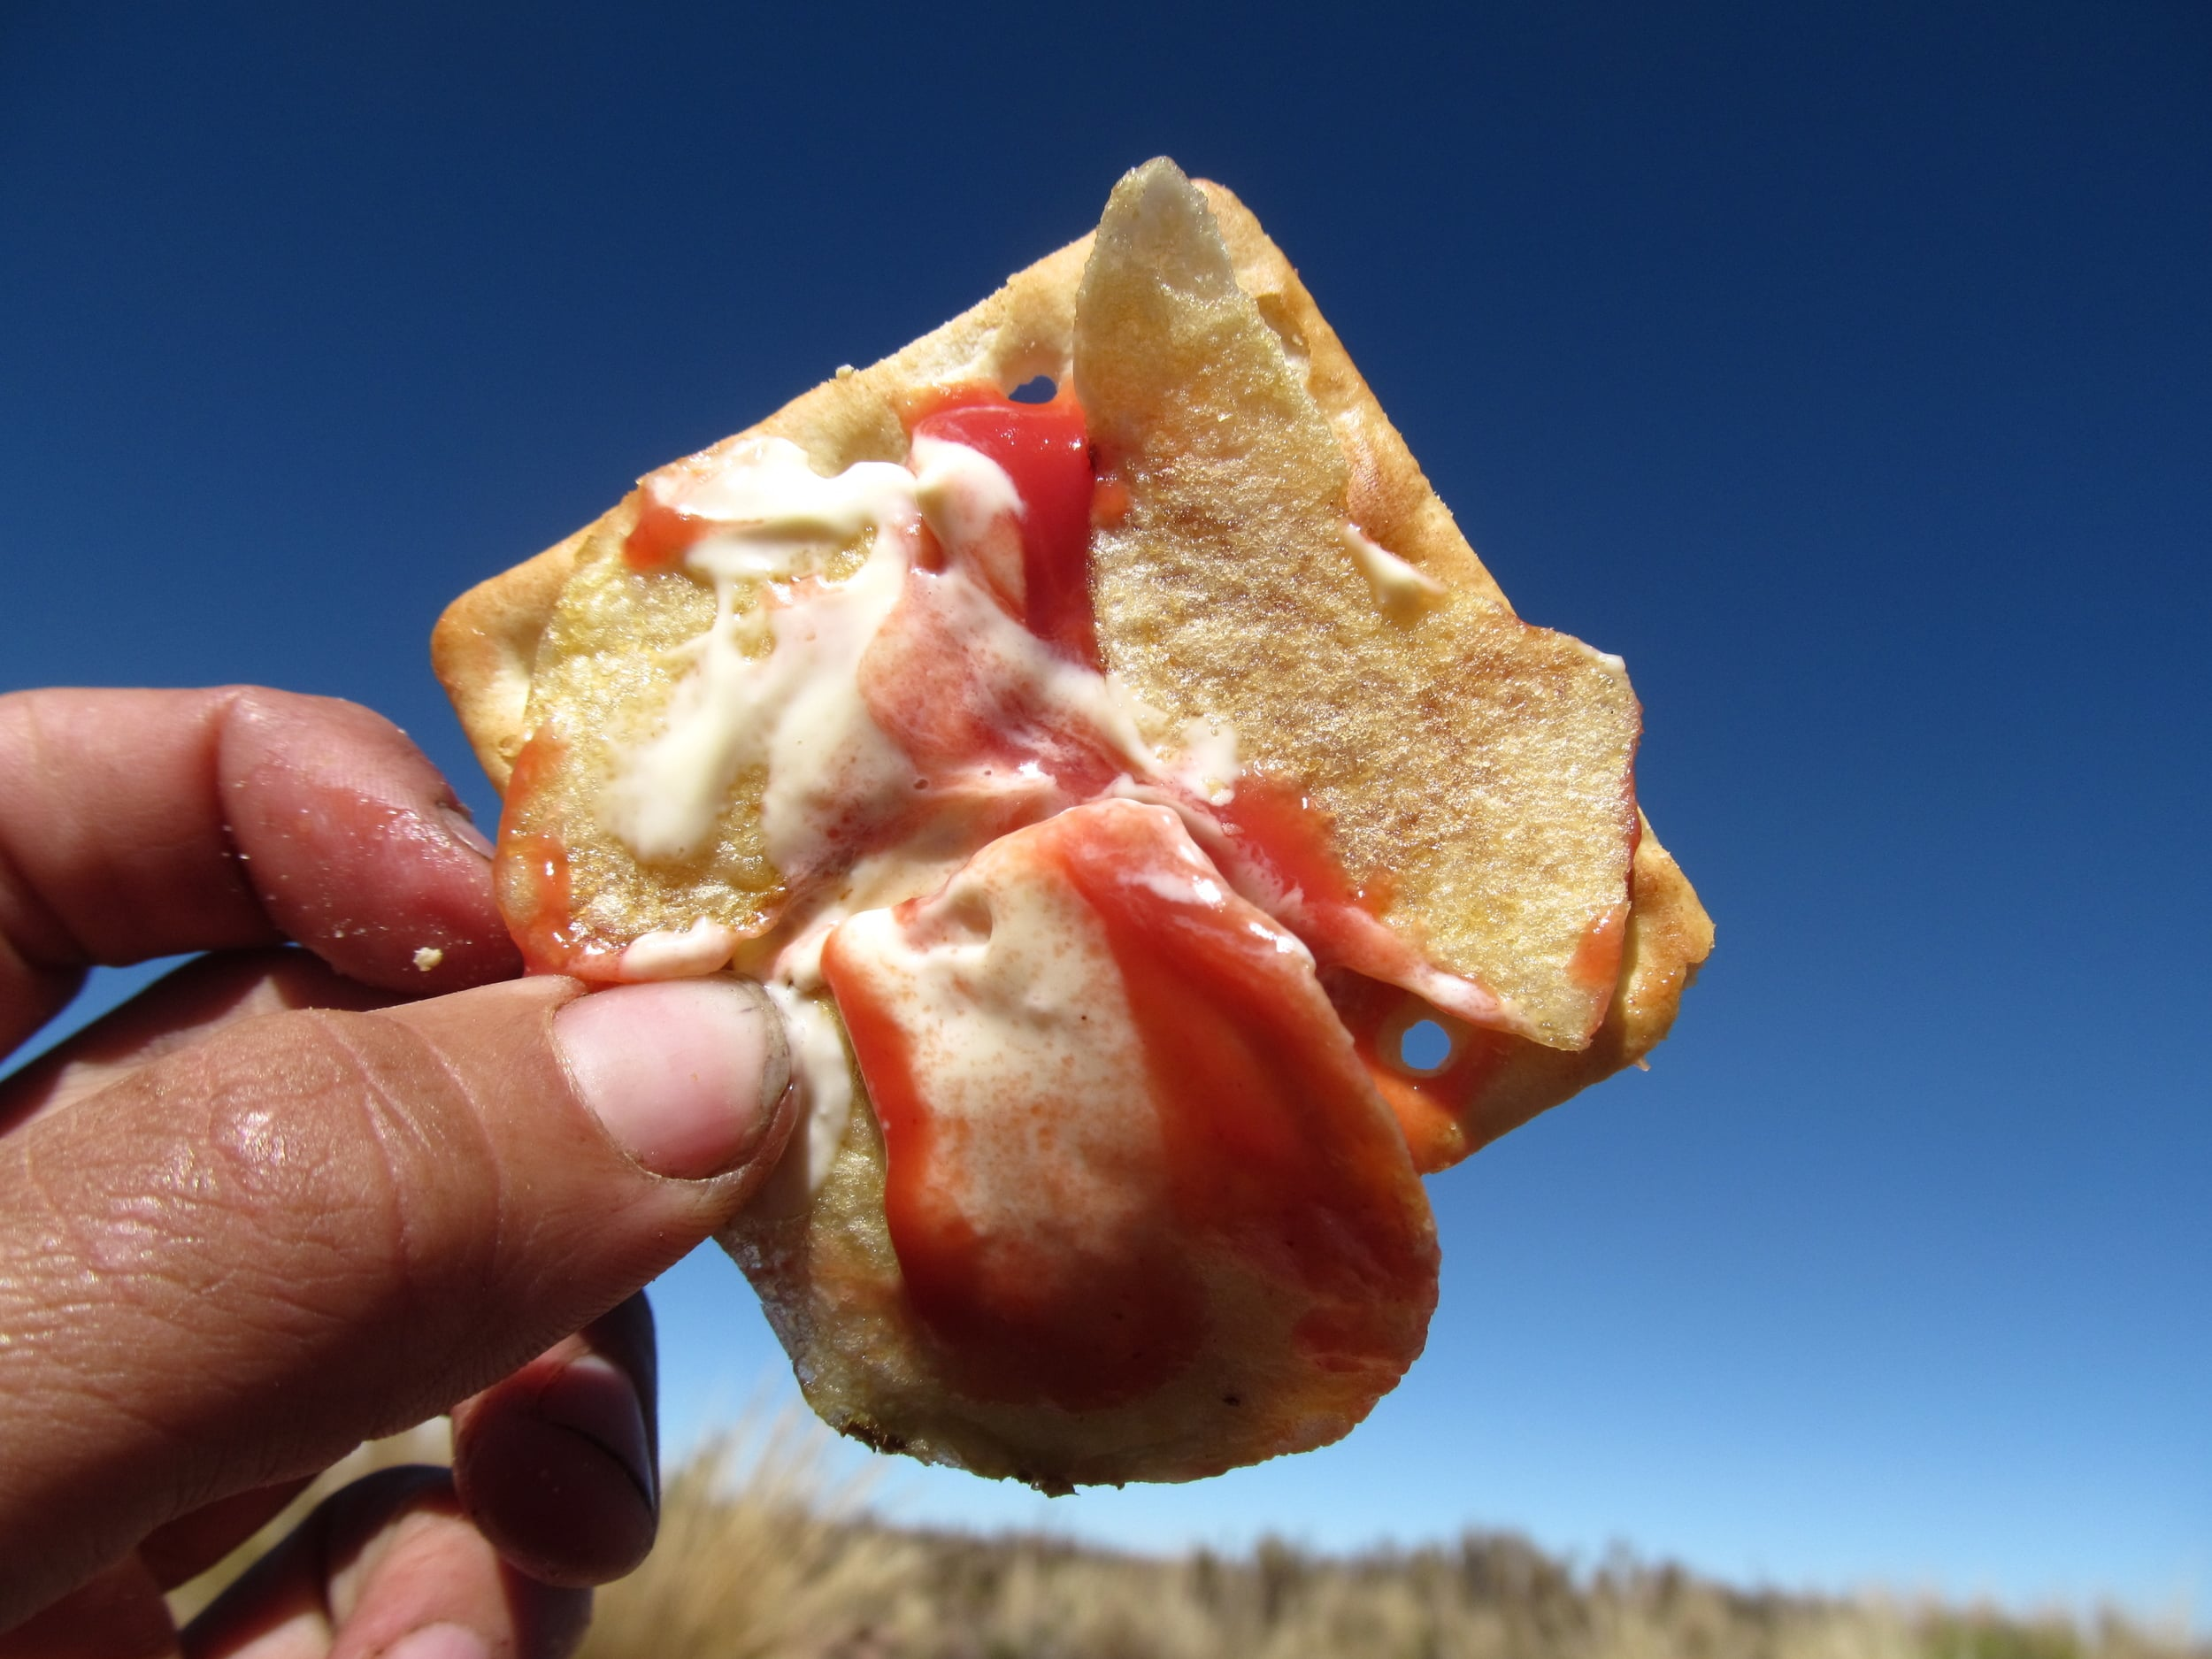 The Mega Mix: A chip, mayo, and ketchup topped cracker.